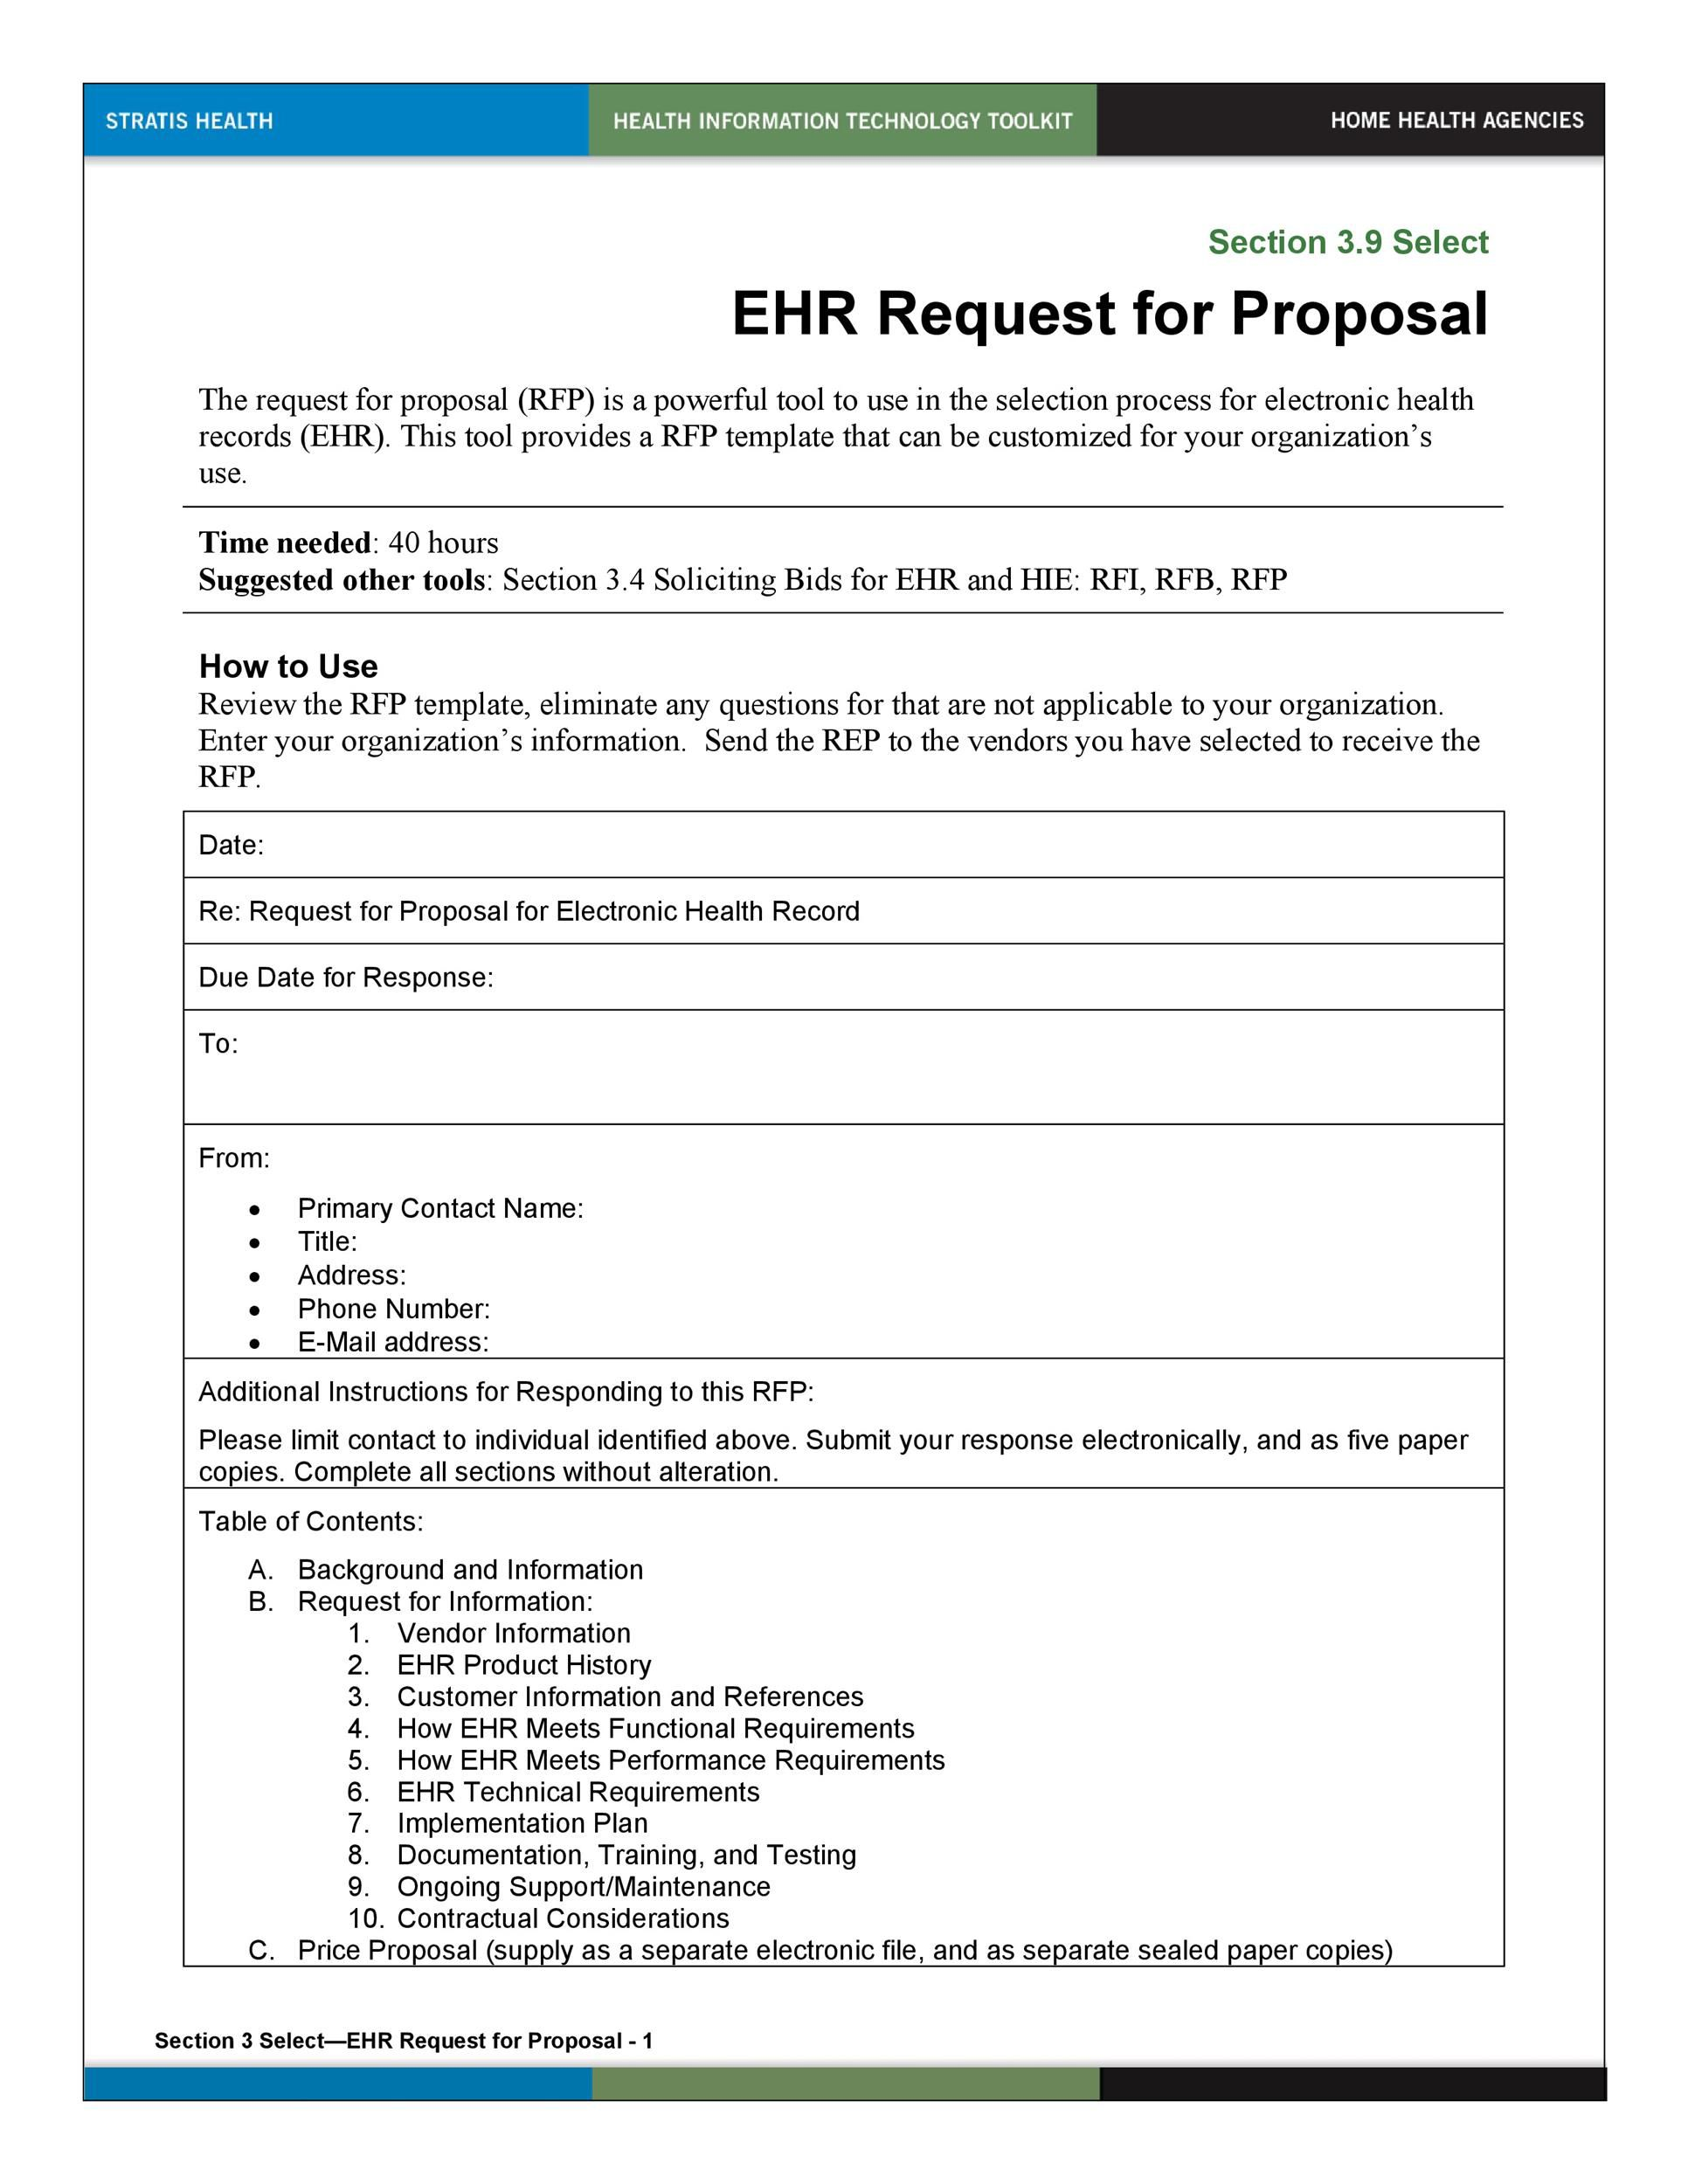 003 Awesome Request For Proposal Response Template Free Photo Full